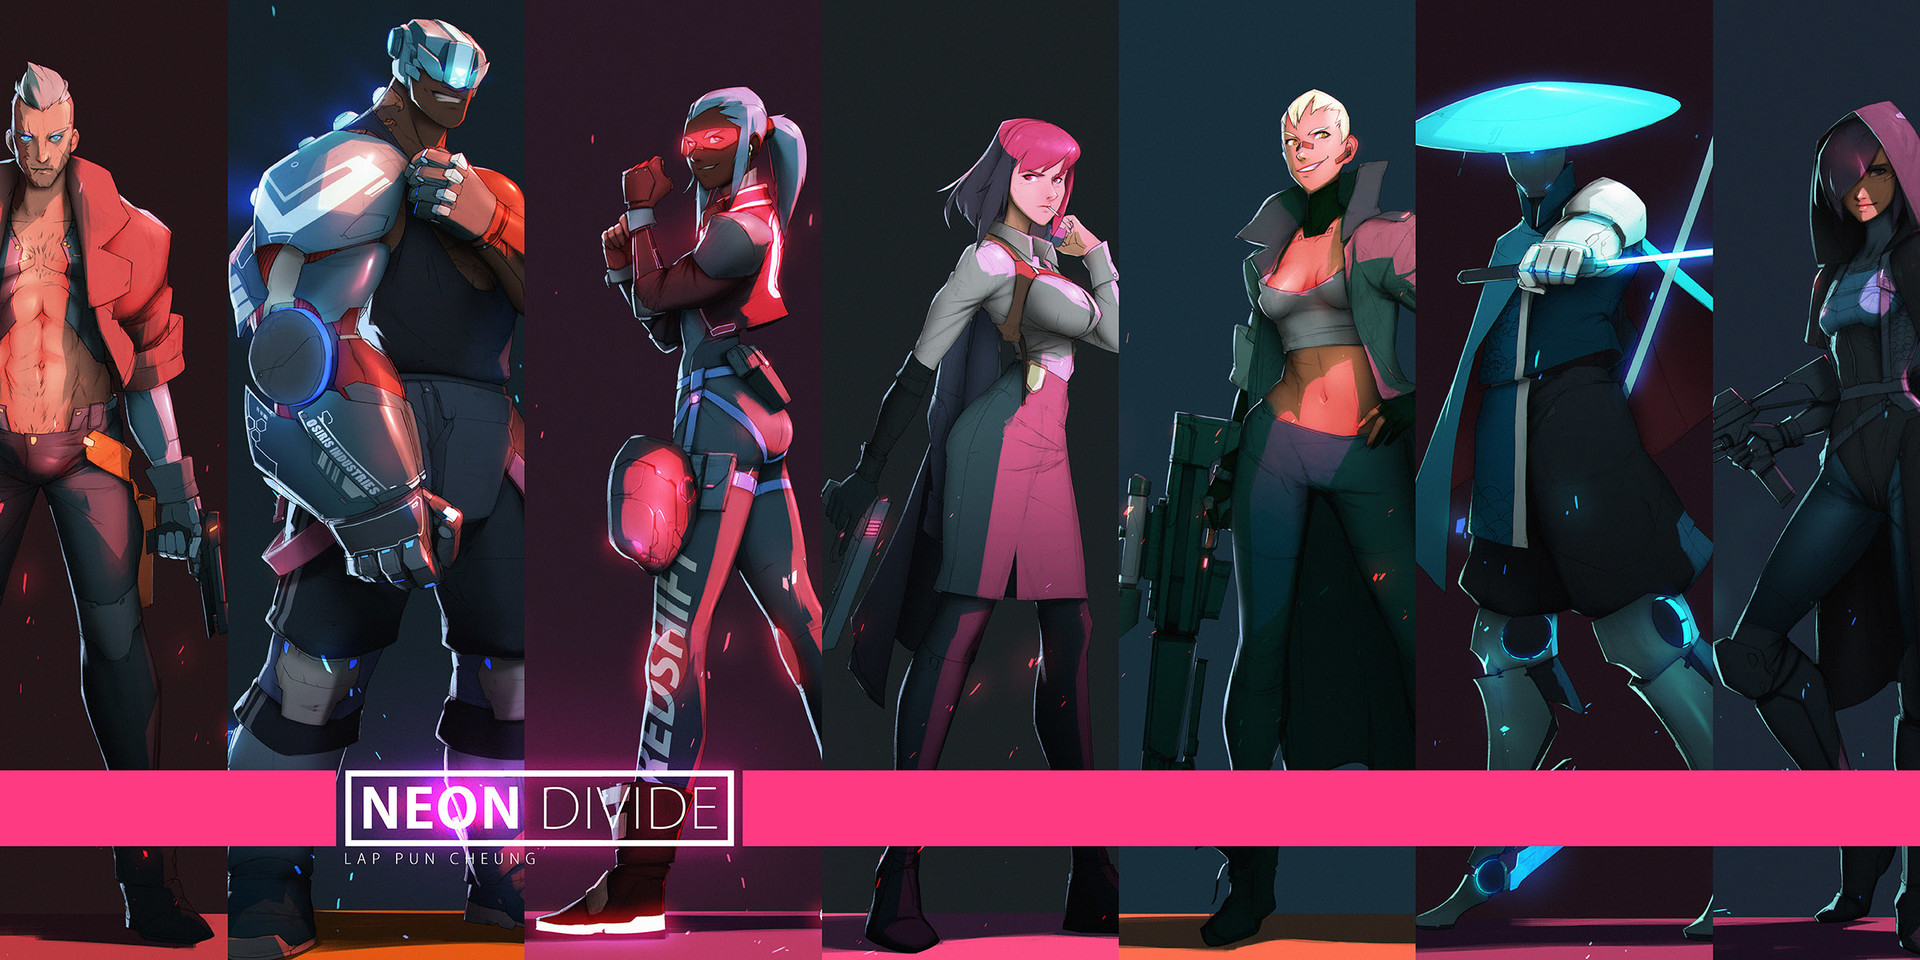 Lap pun cheung neon divide character compilation 002 online